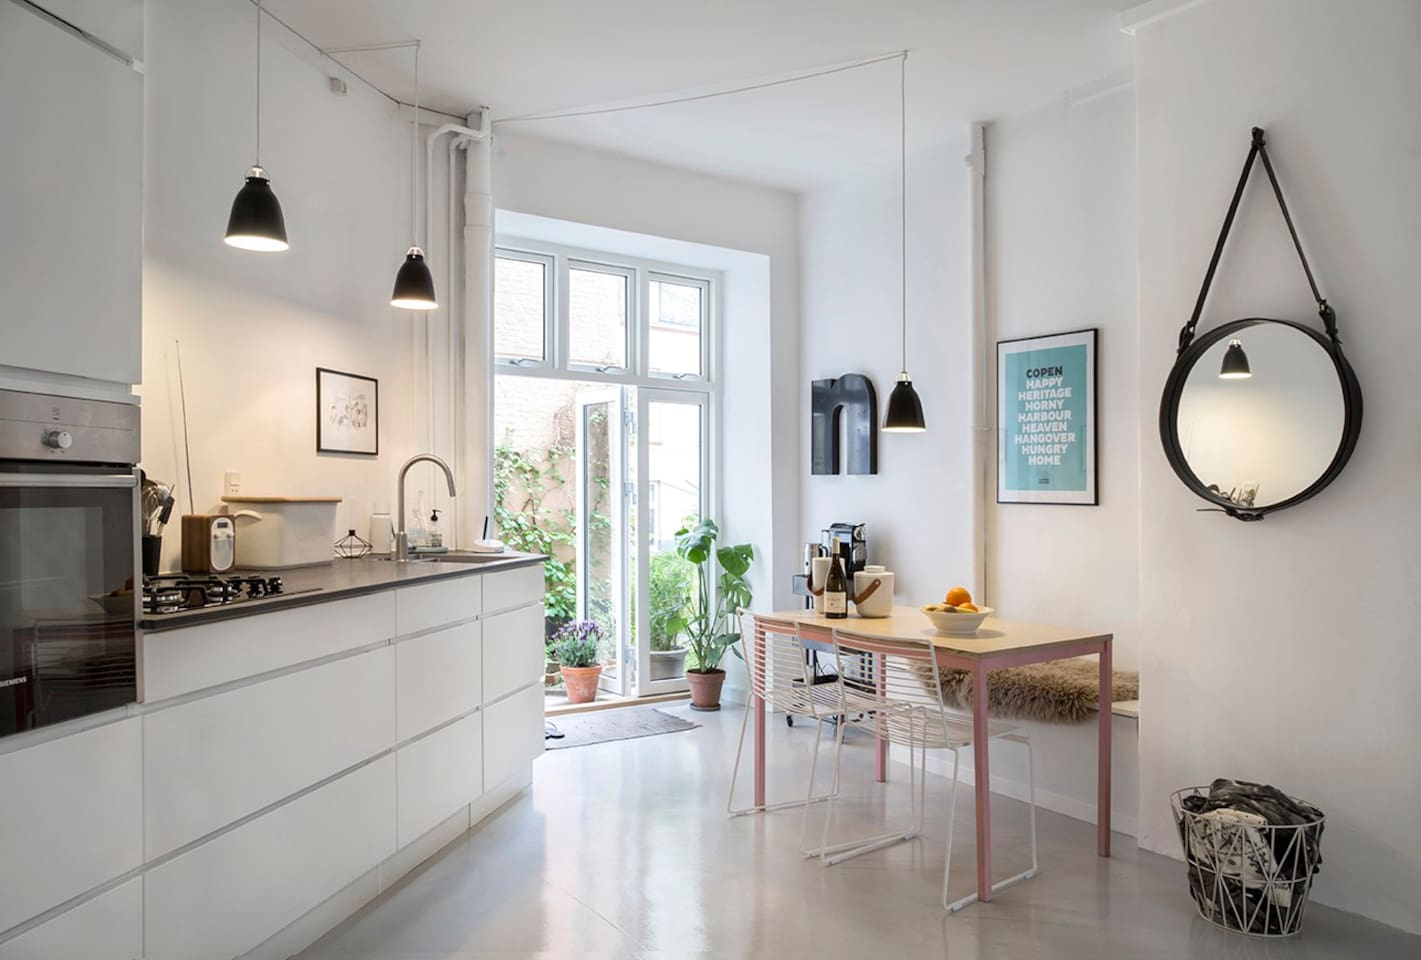 Nice kitchen with directly access to green courtyard.